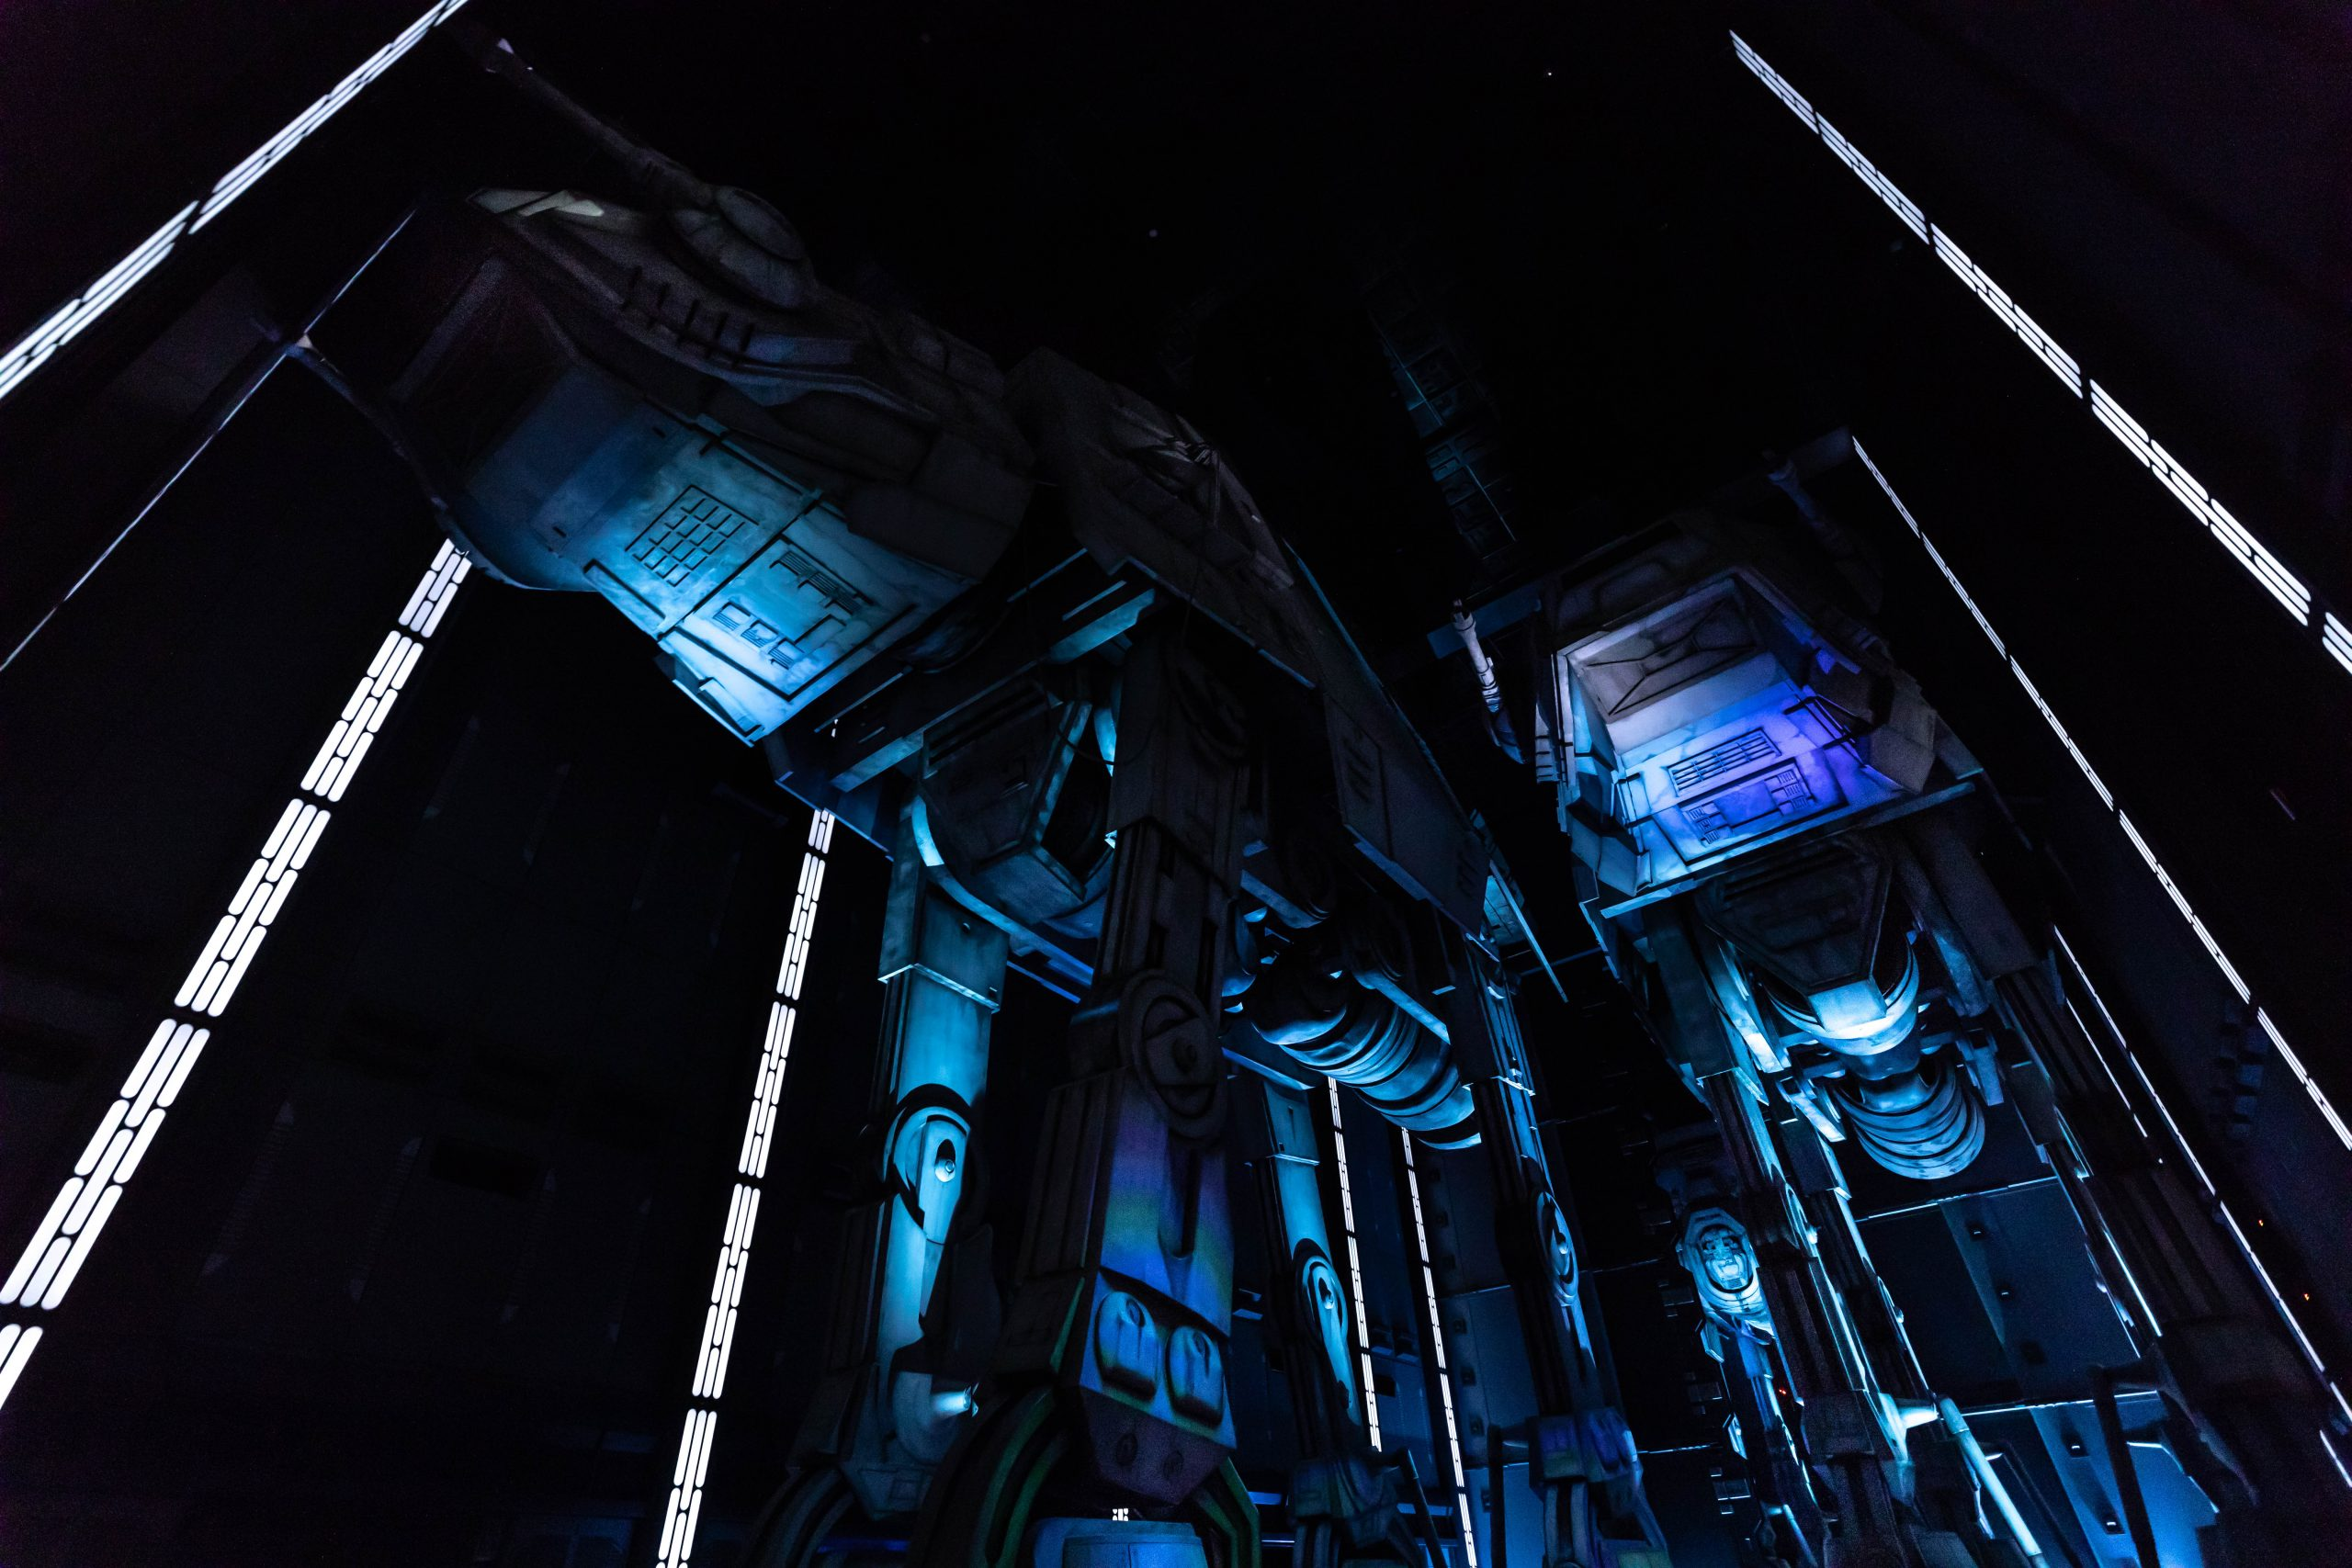 Rise of the Resistance Ride at Galaxy's Edge in Hollywood Studios at Walt Disney World Photographed by Annie Fairfax